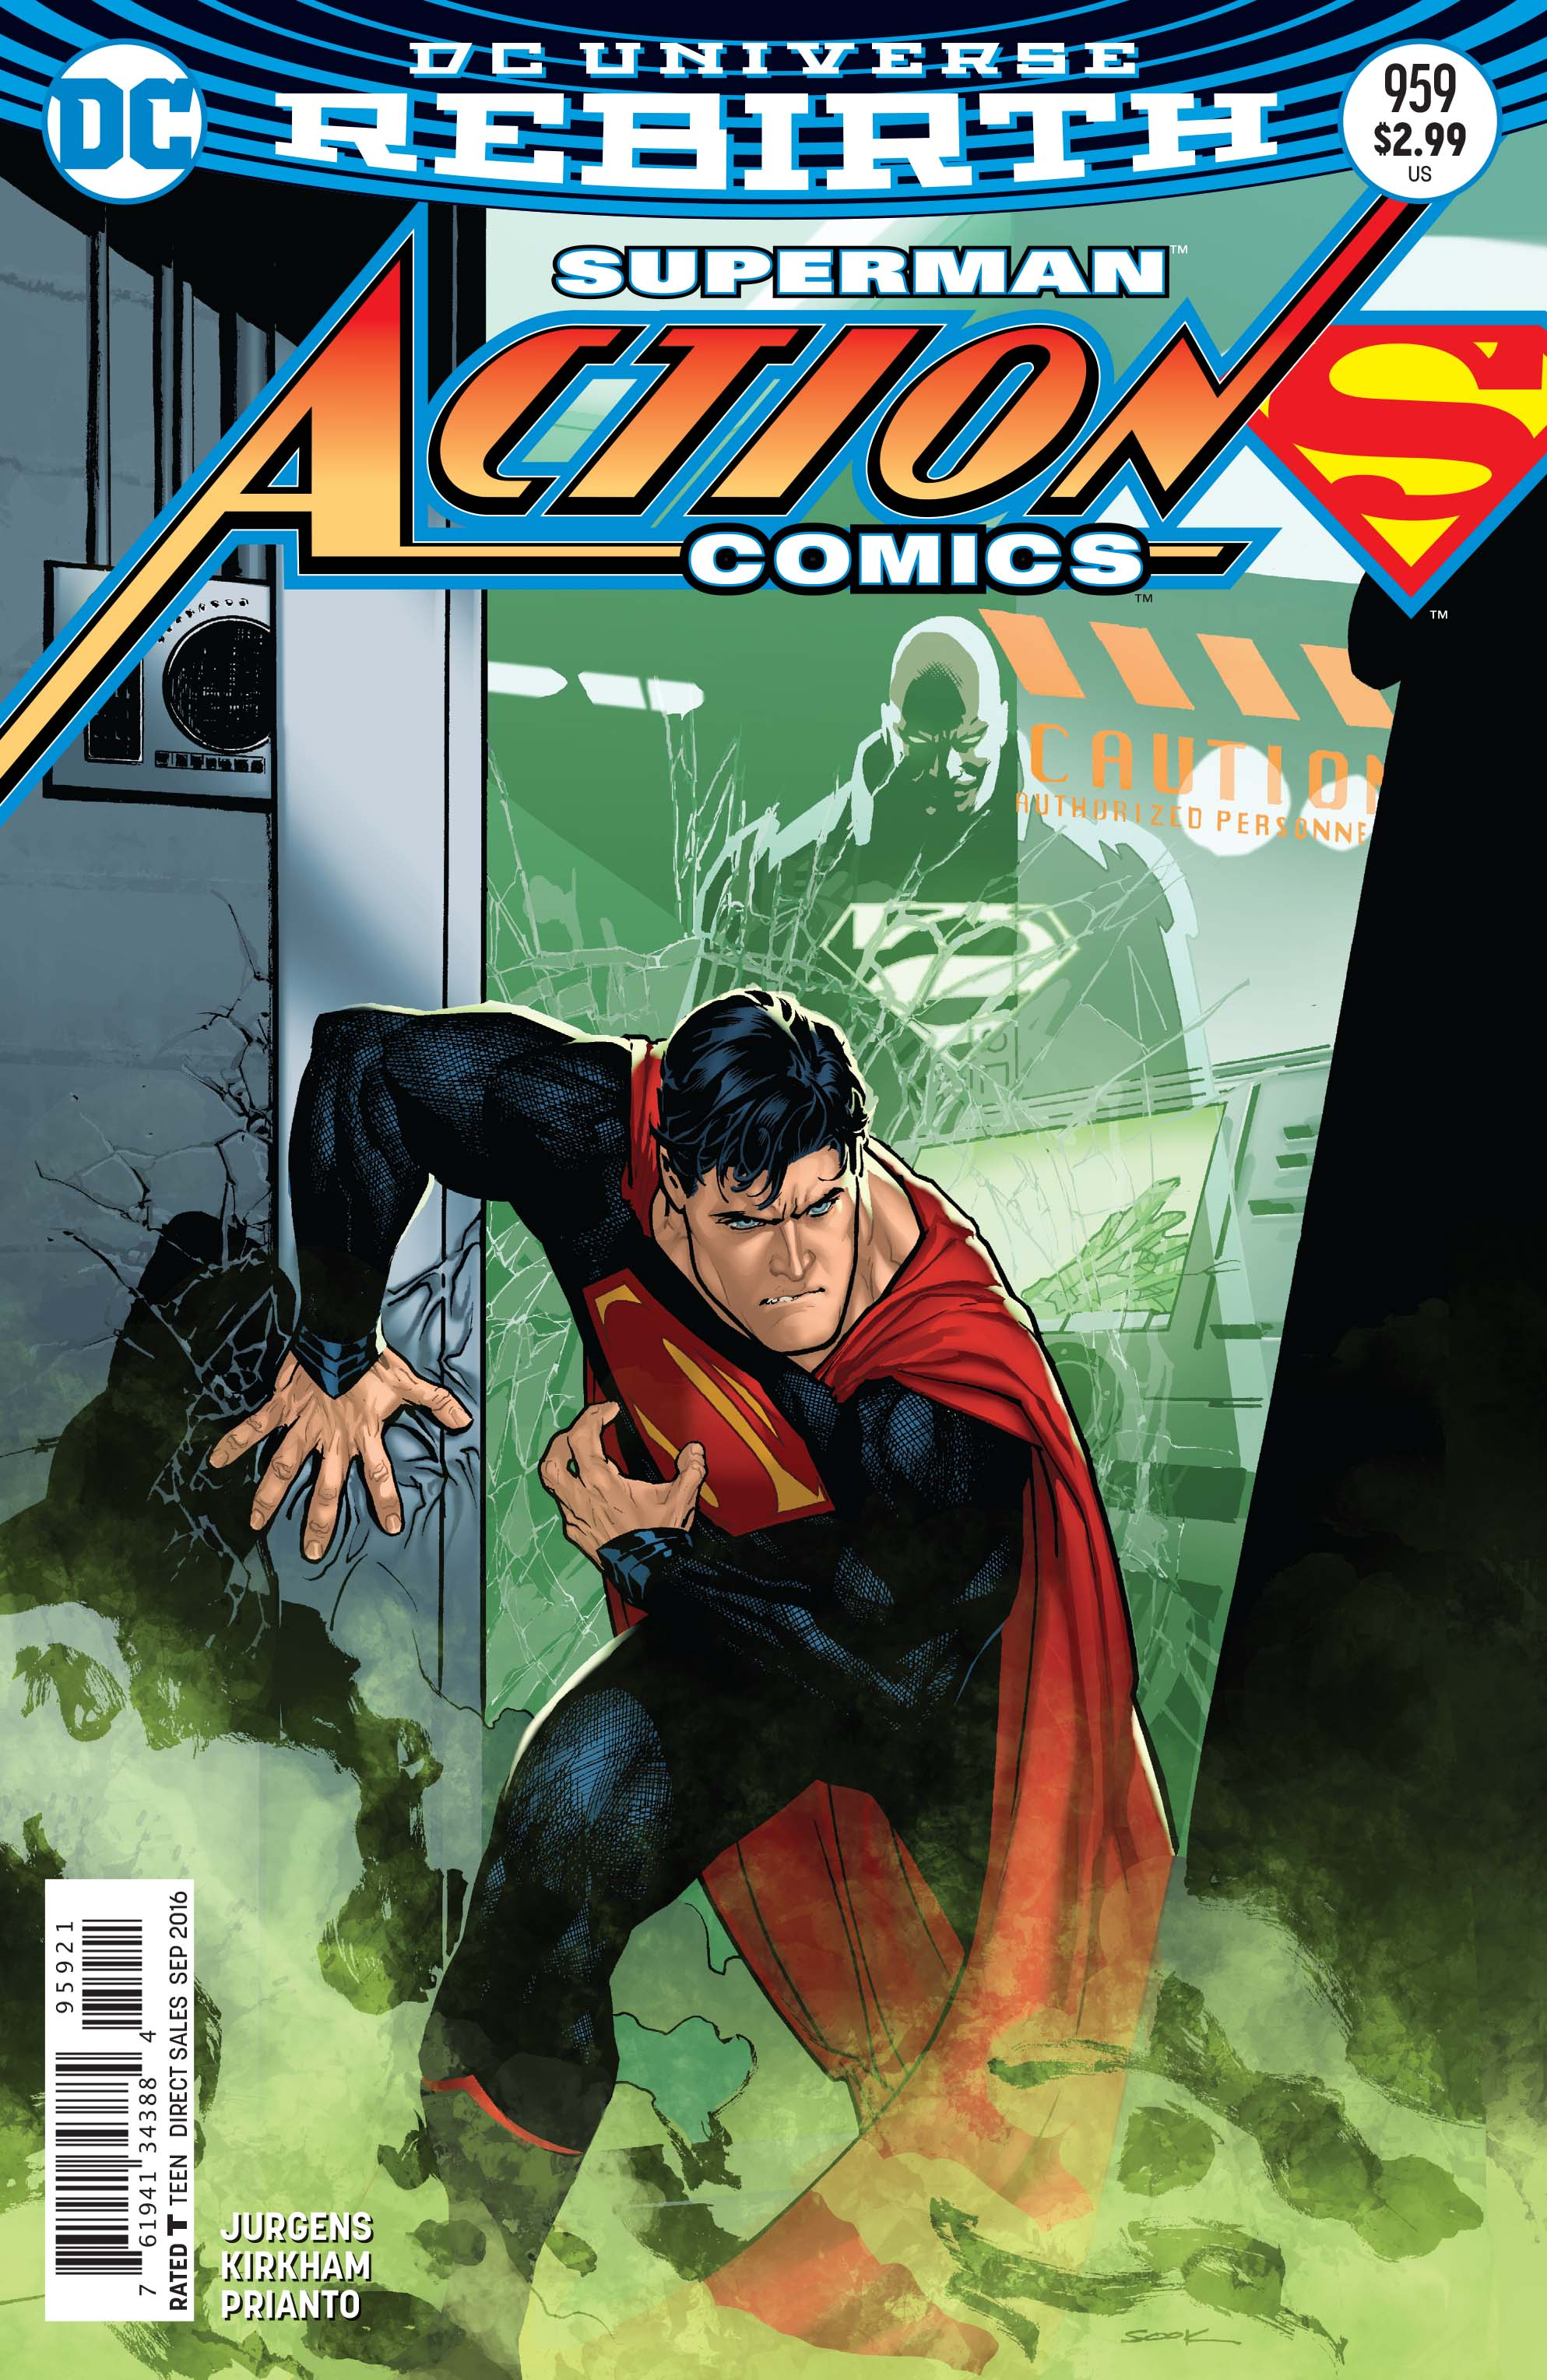 dan jurgens on superman finding his bearings in action